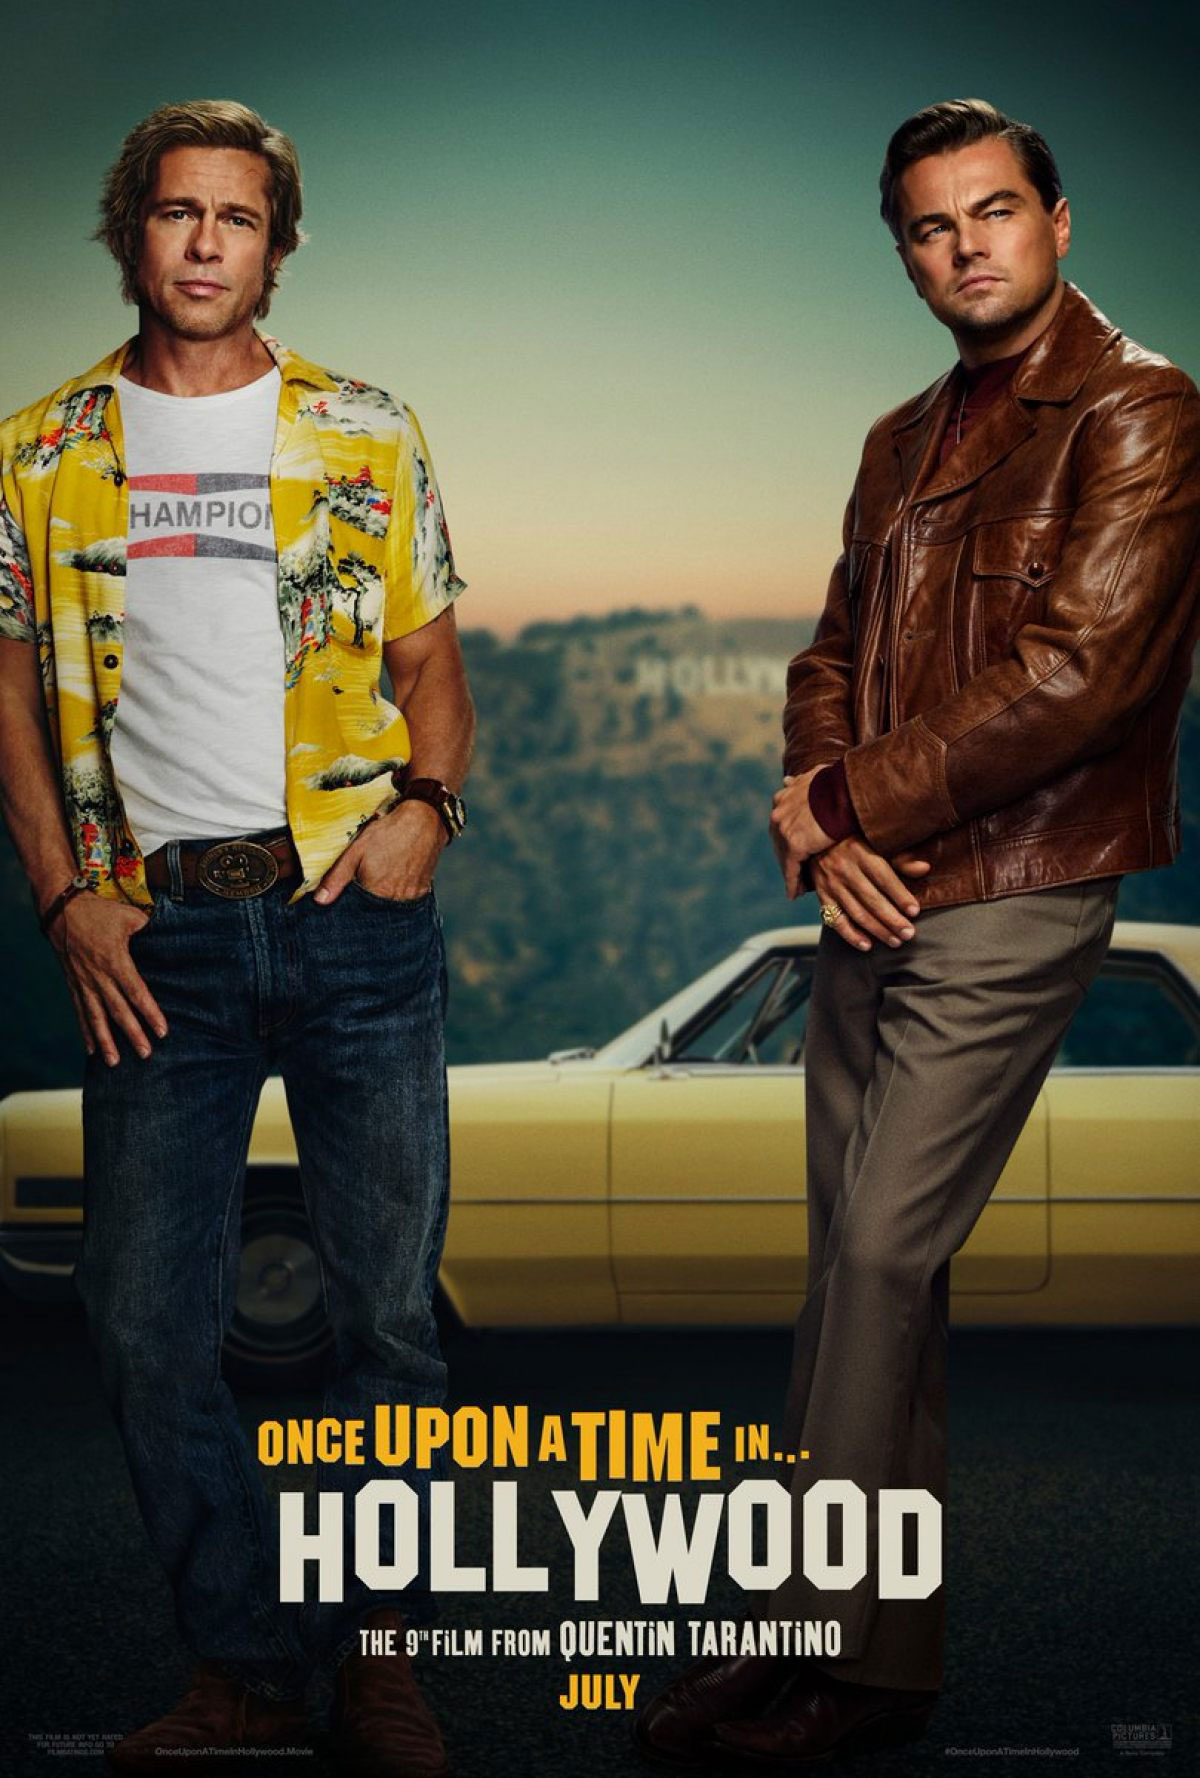 Primer poster oficial de Once Upon a Time in Hollywood de Quentin Tarantino